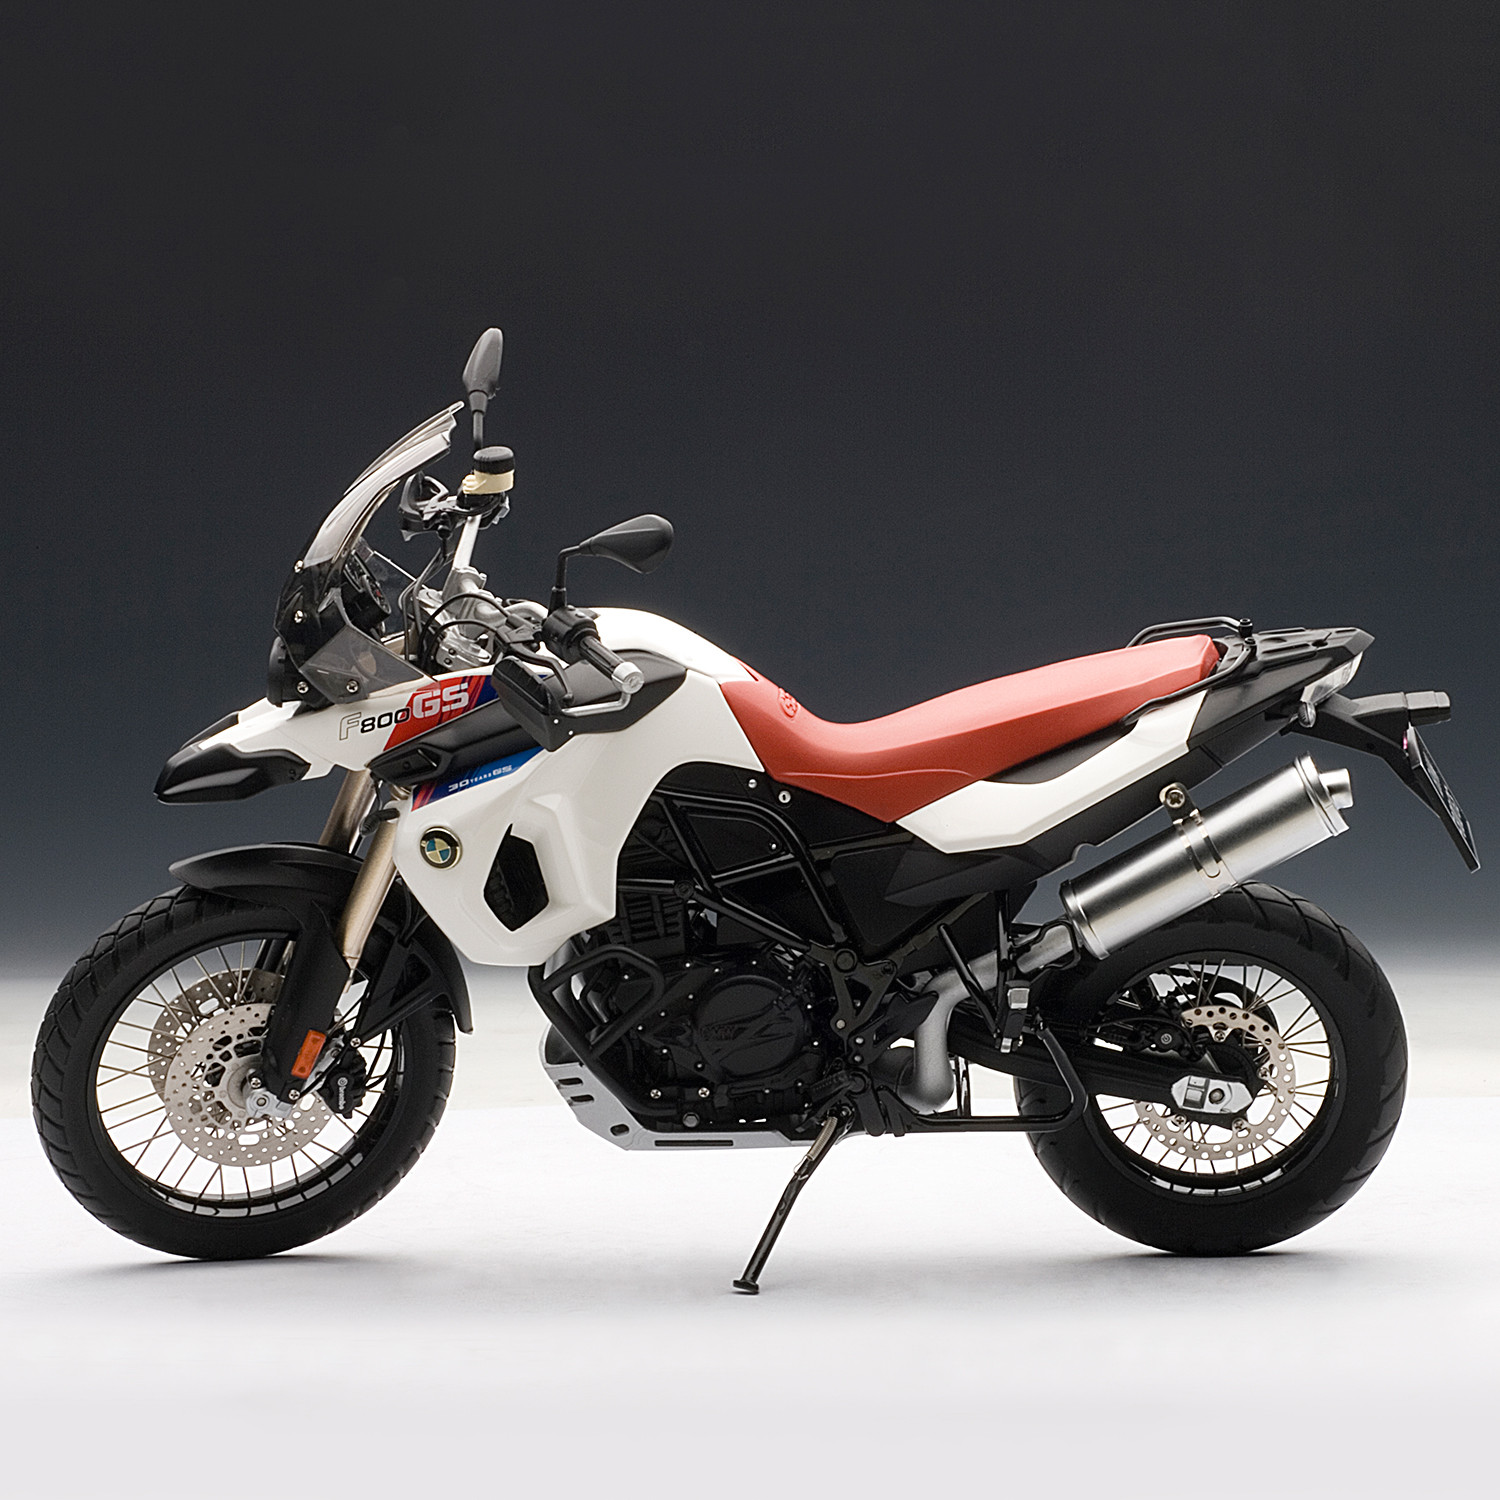 bmw f800 gs motor bike 30th anniversary edition auto art touch of modern. Black Bedroom Furniture Sets. Home Design Ideas